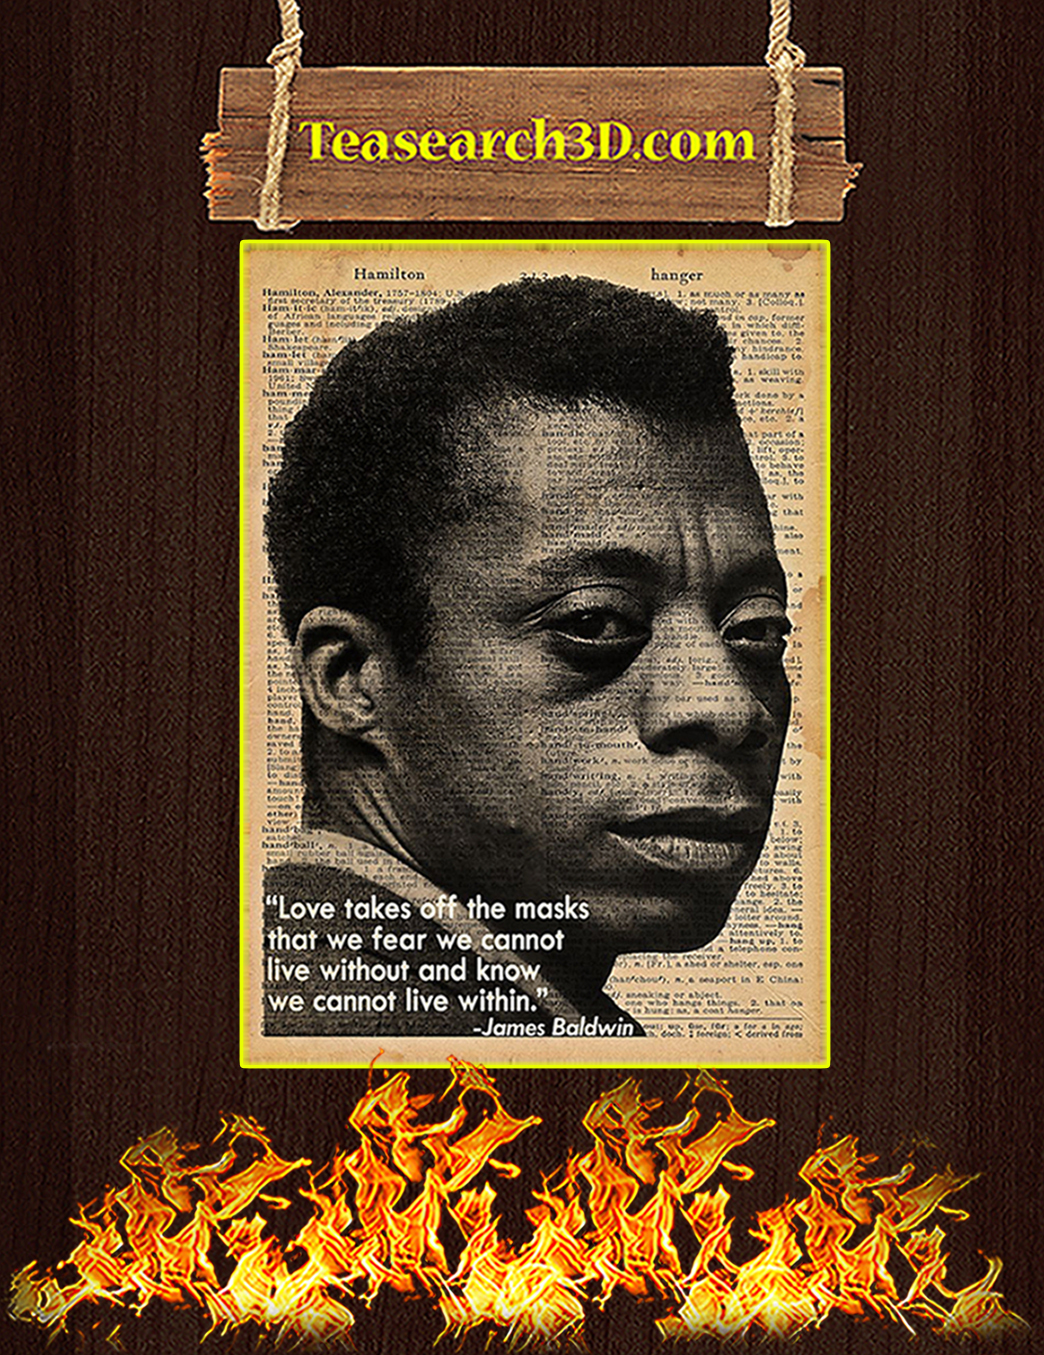 James Baldwin Love takes off the masks poster A1